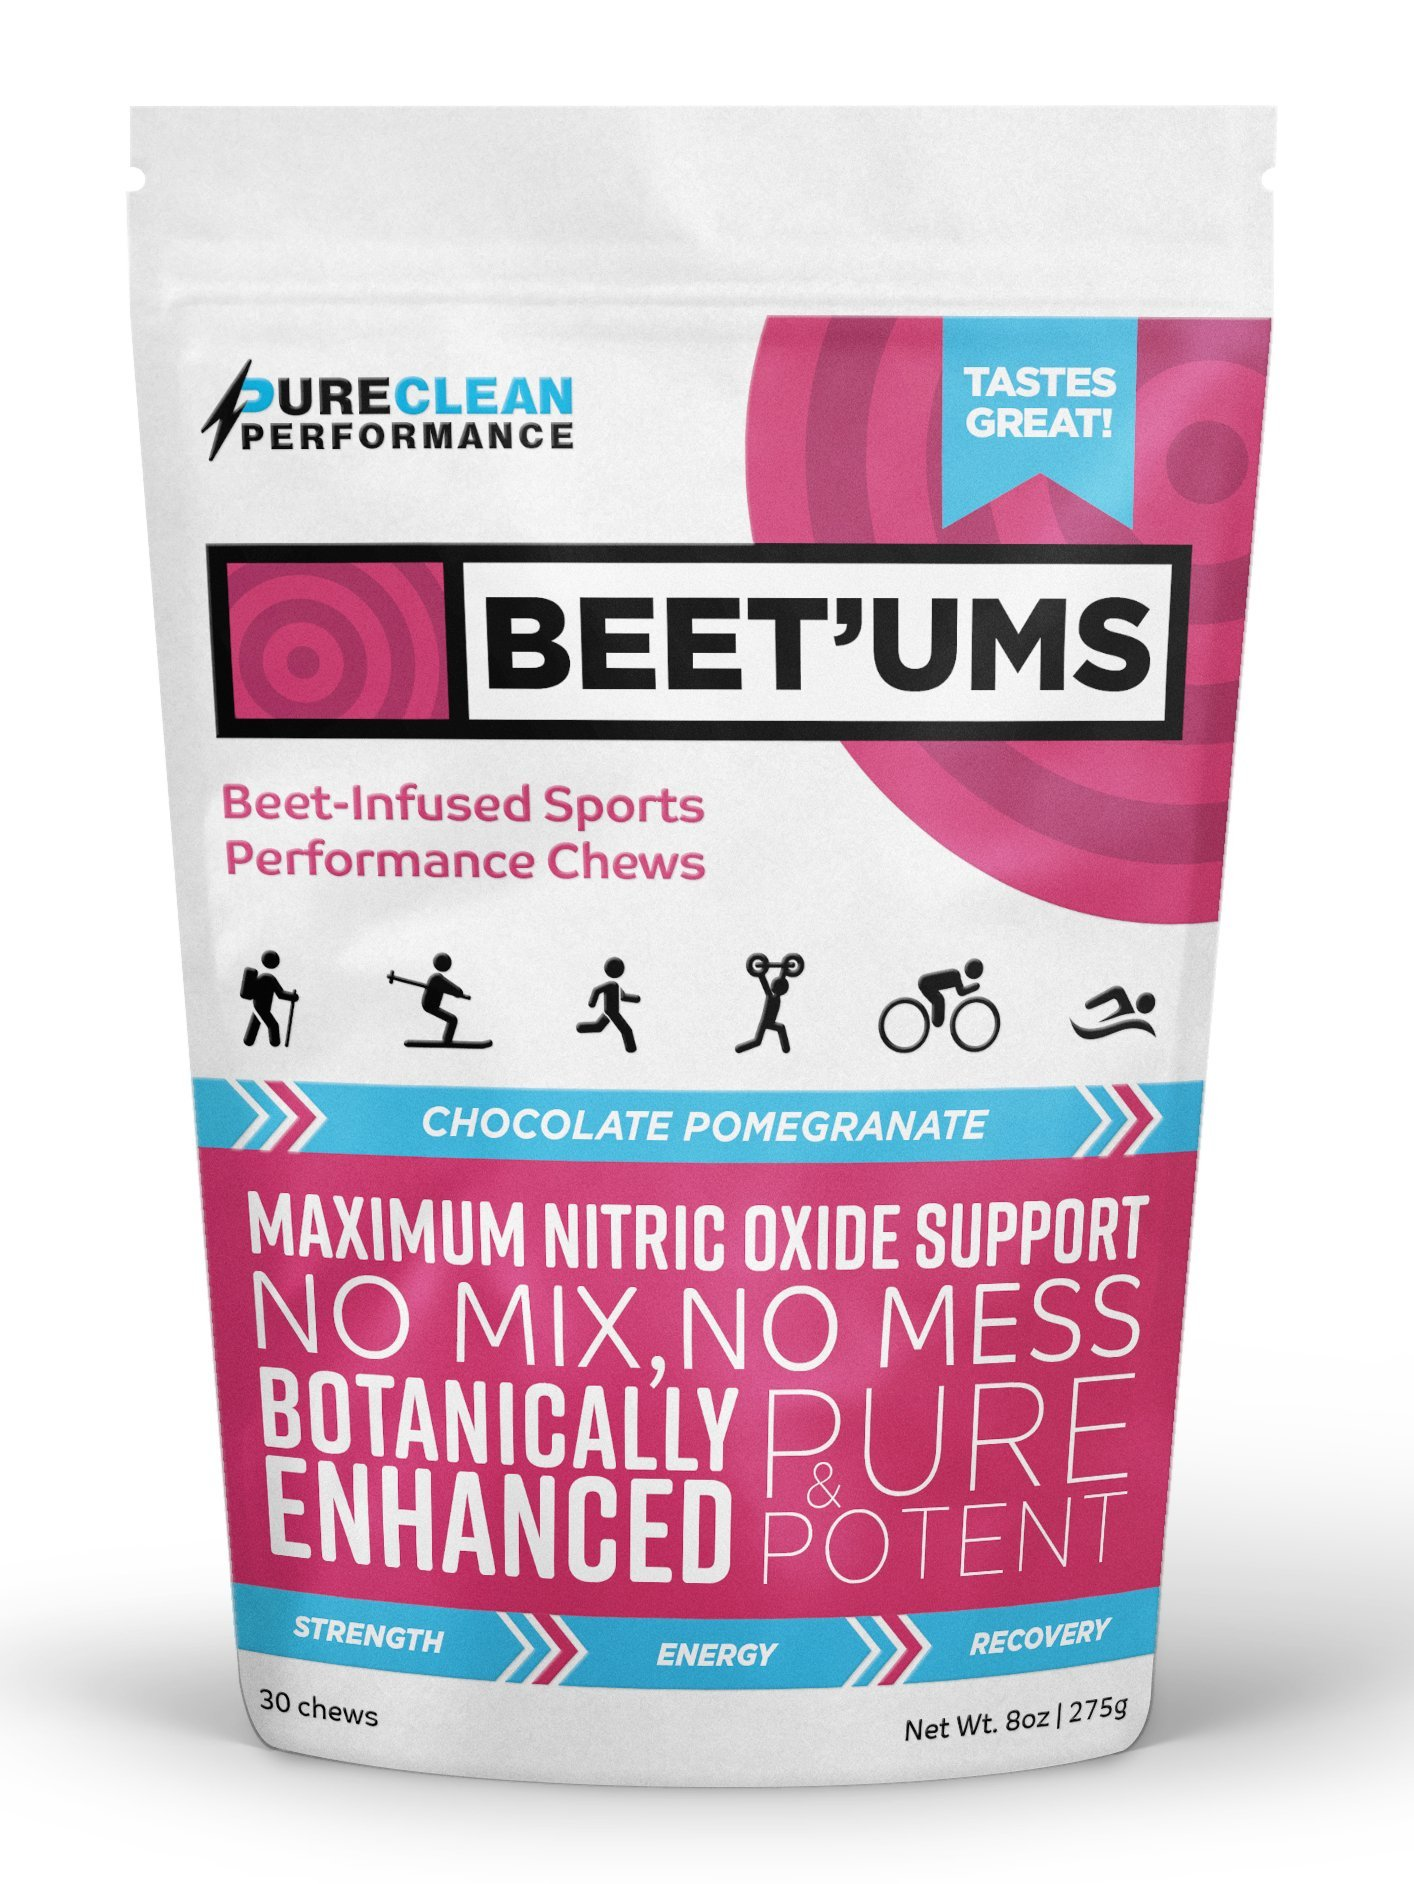 BEET'Ums- Beet Performance Chews Endurance Supplement. Delicious Chocolate Fudge, Grab & Go, Nitric Oxide Supplement. Supports Stamina, Energy & Performance, Replace or Combine with Beet Root Powder